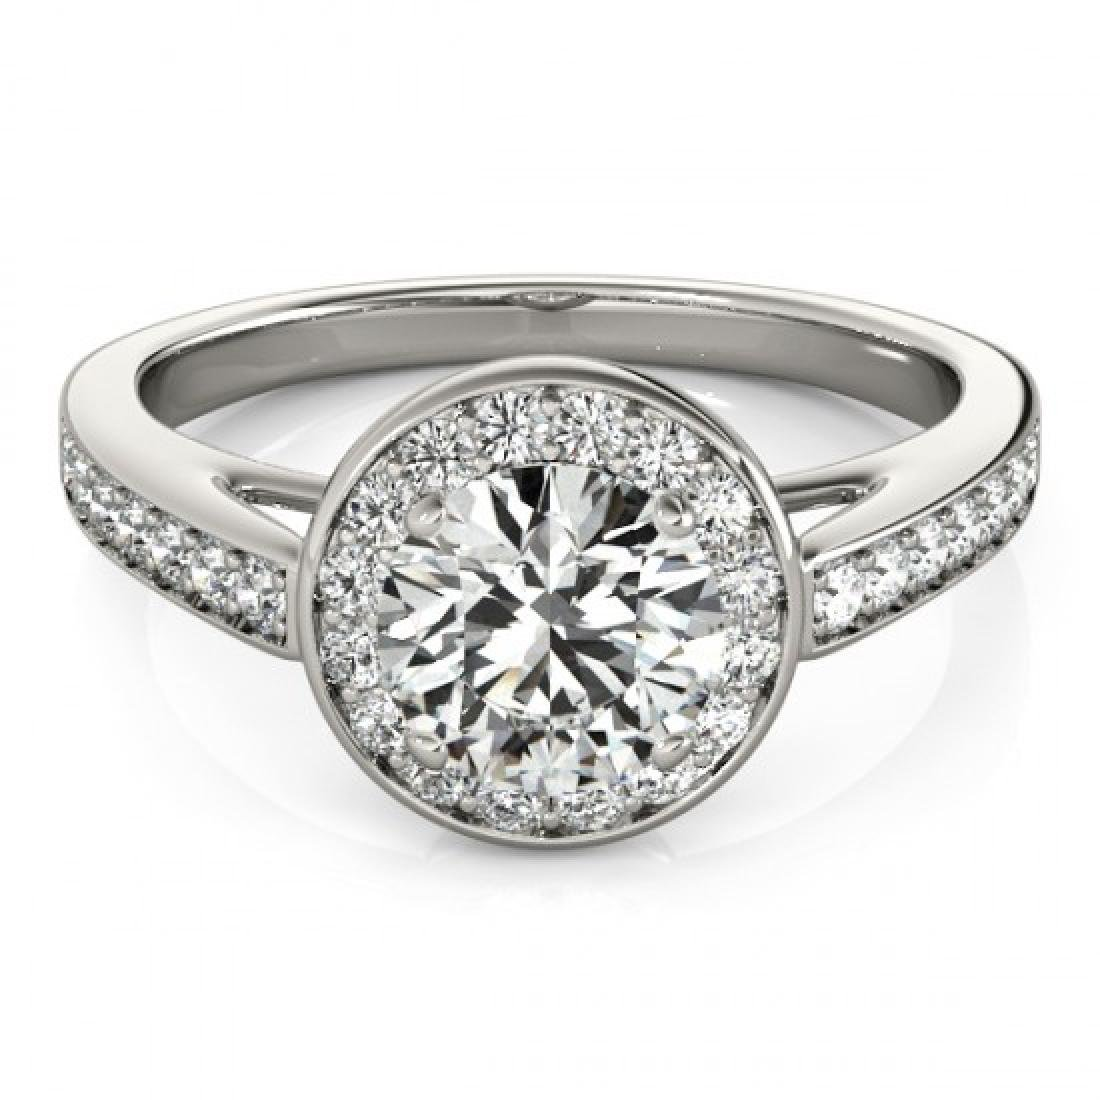 1.45 CTW Certified VS/SI Diamond Solitaire Halo Ring